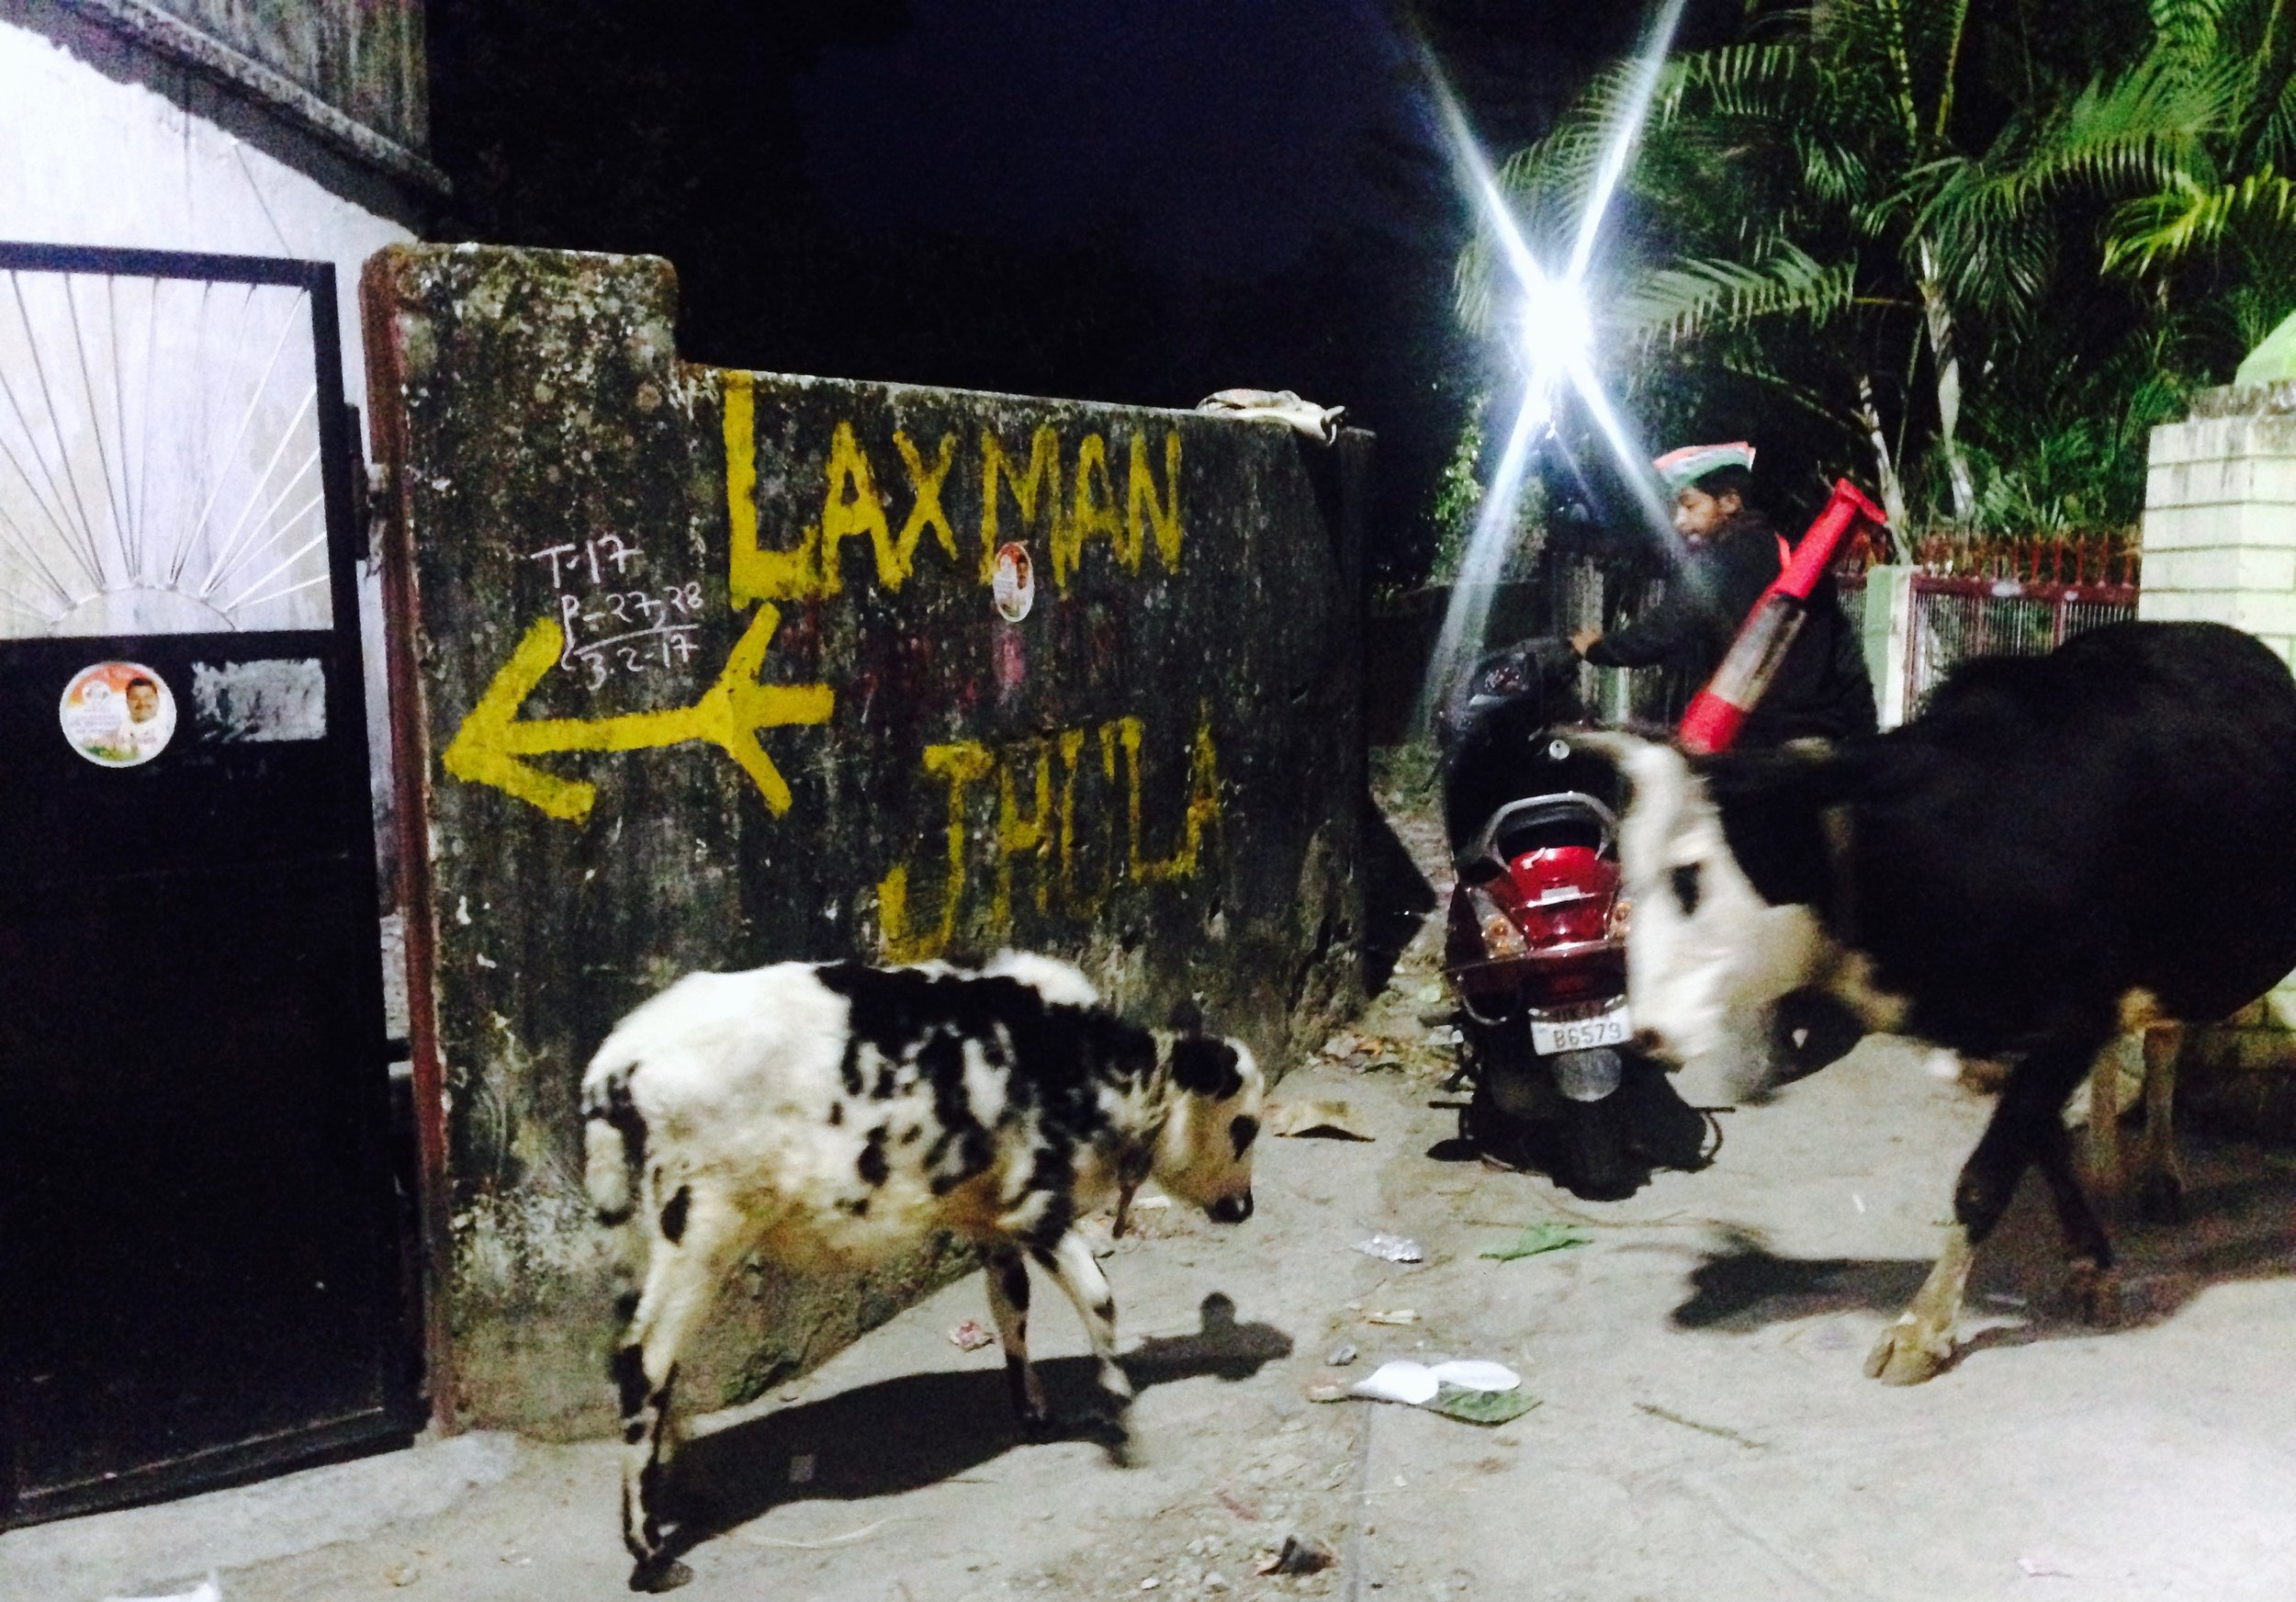 Baby cow and mama taking a nighttime stroll through one of my favorite paths in Tapovan